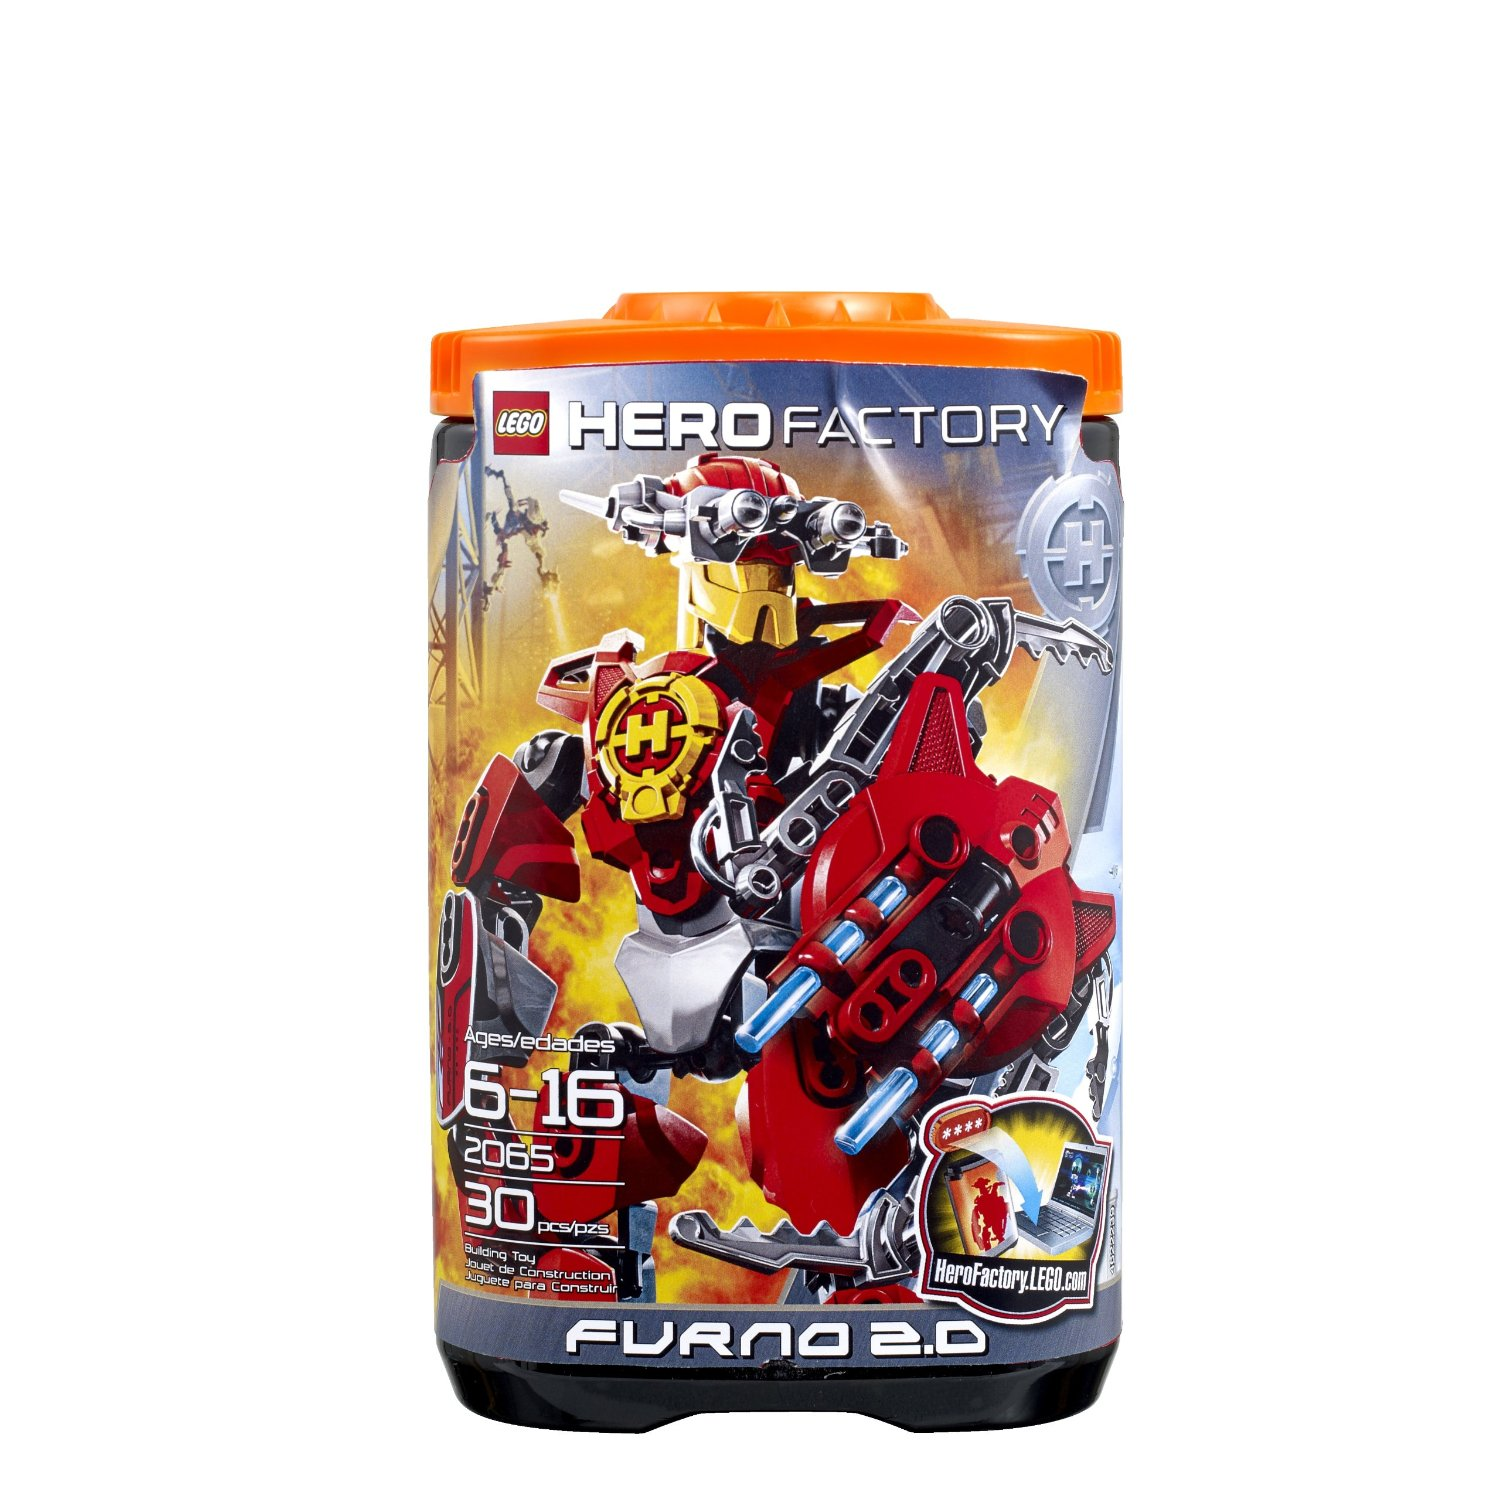 lego hero factory furno 2 0 2065 building toy